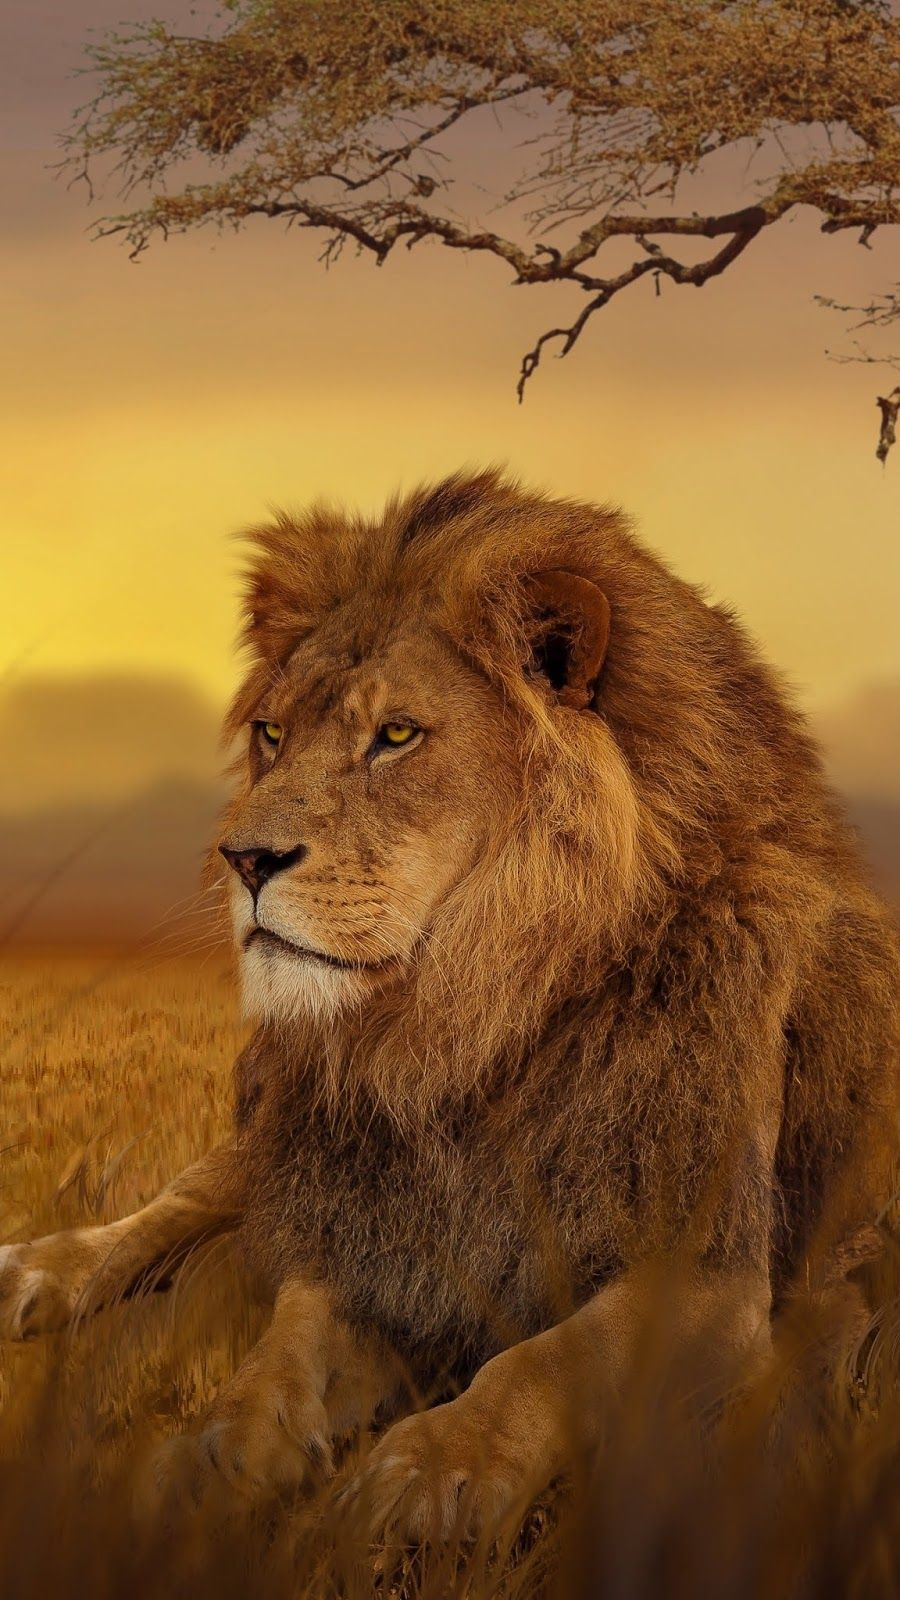 Animals Lion id 50905 Animal wallpaper, Lion hd